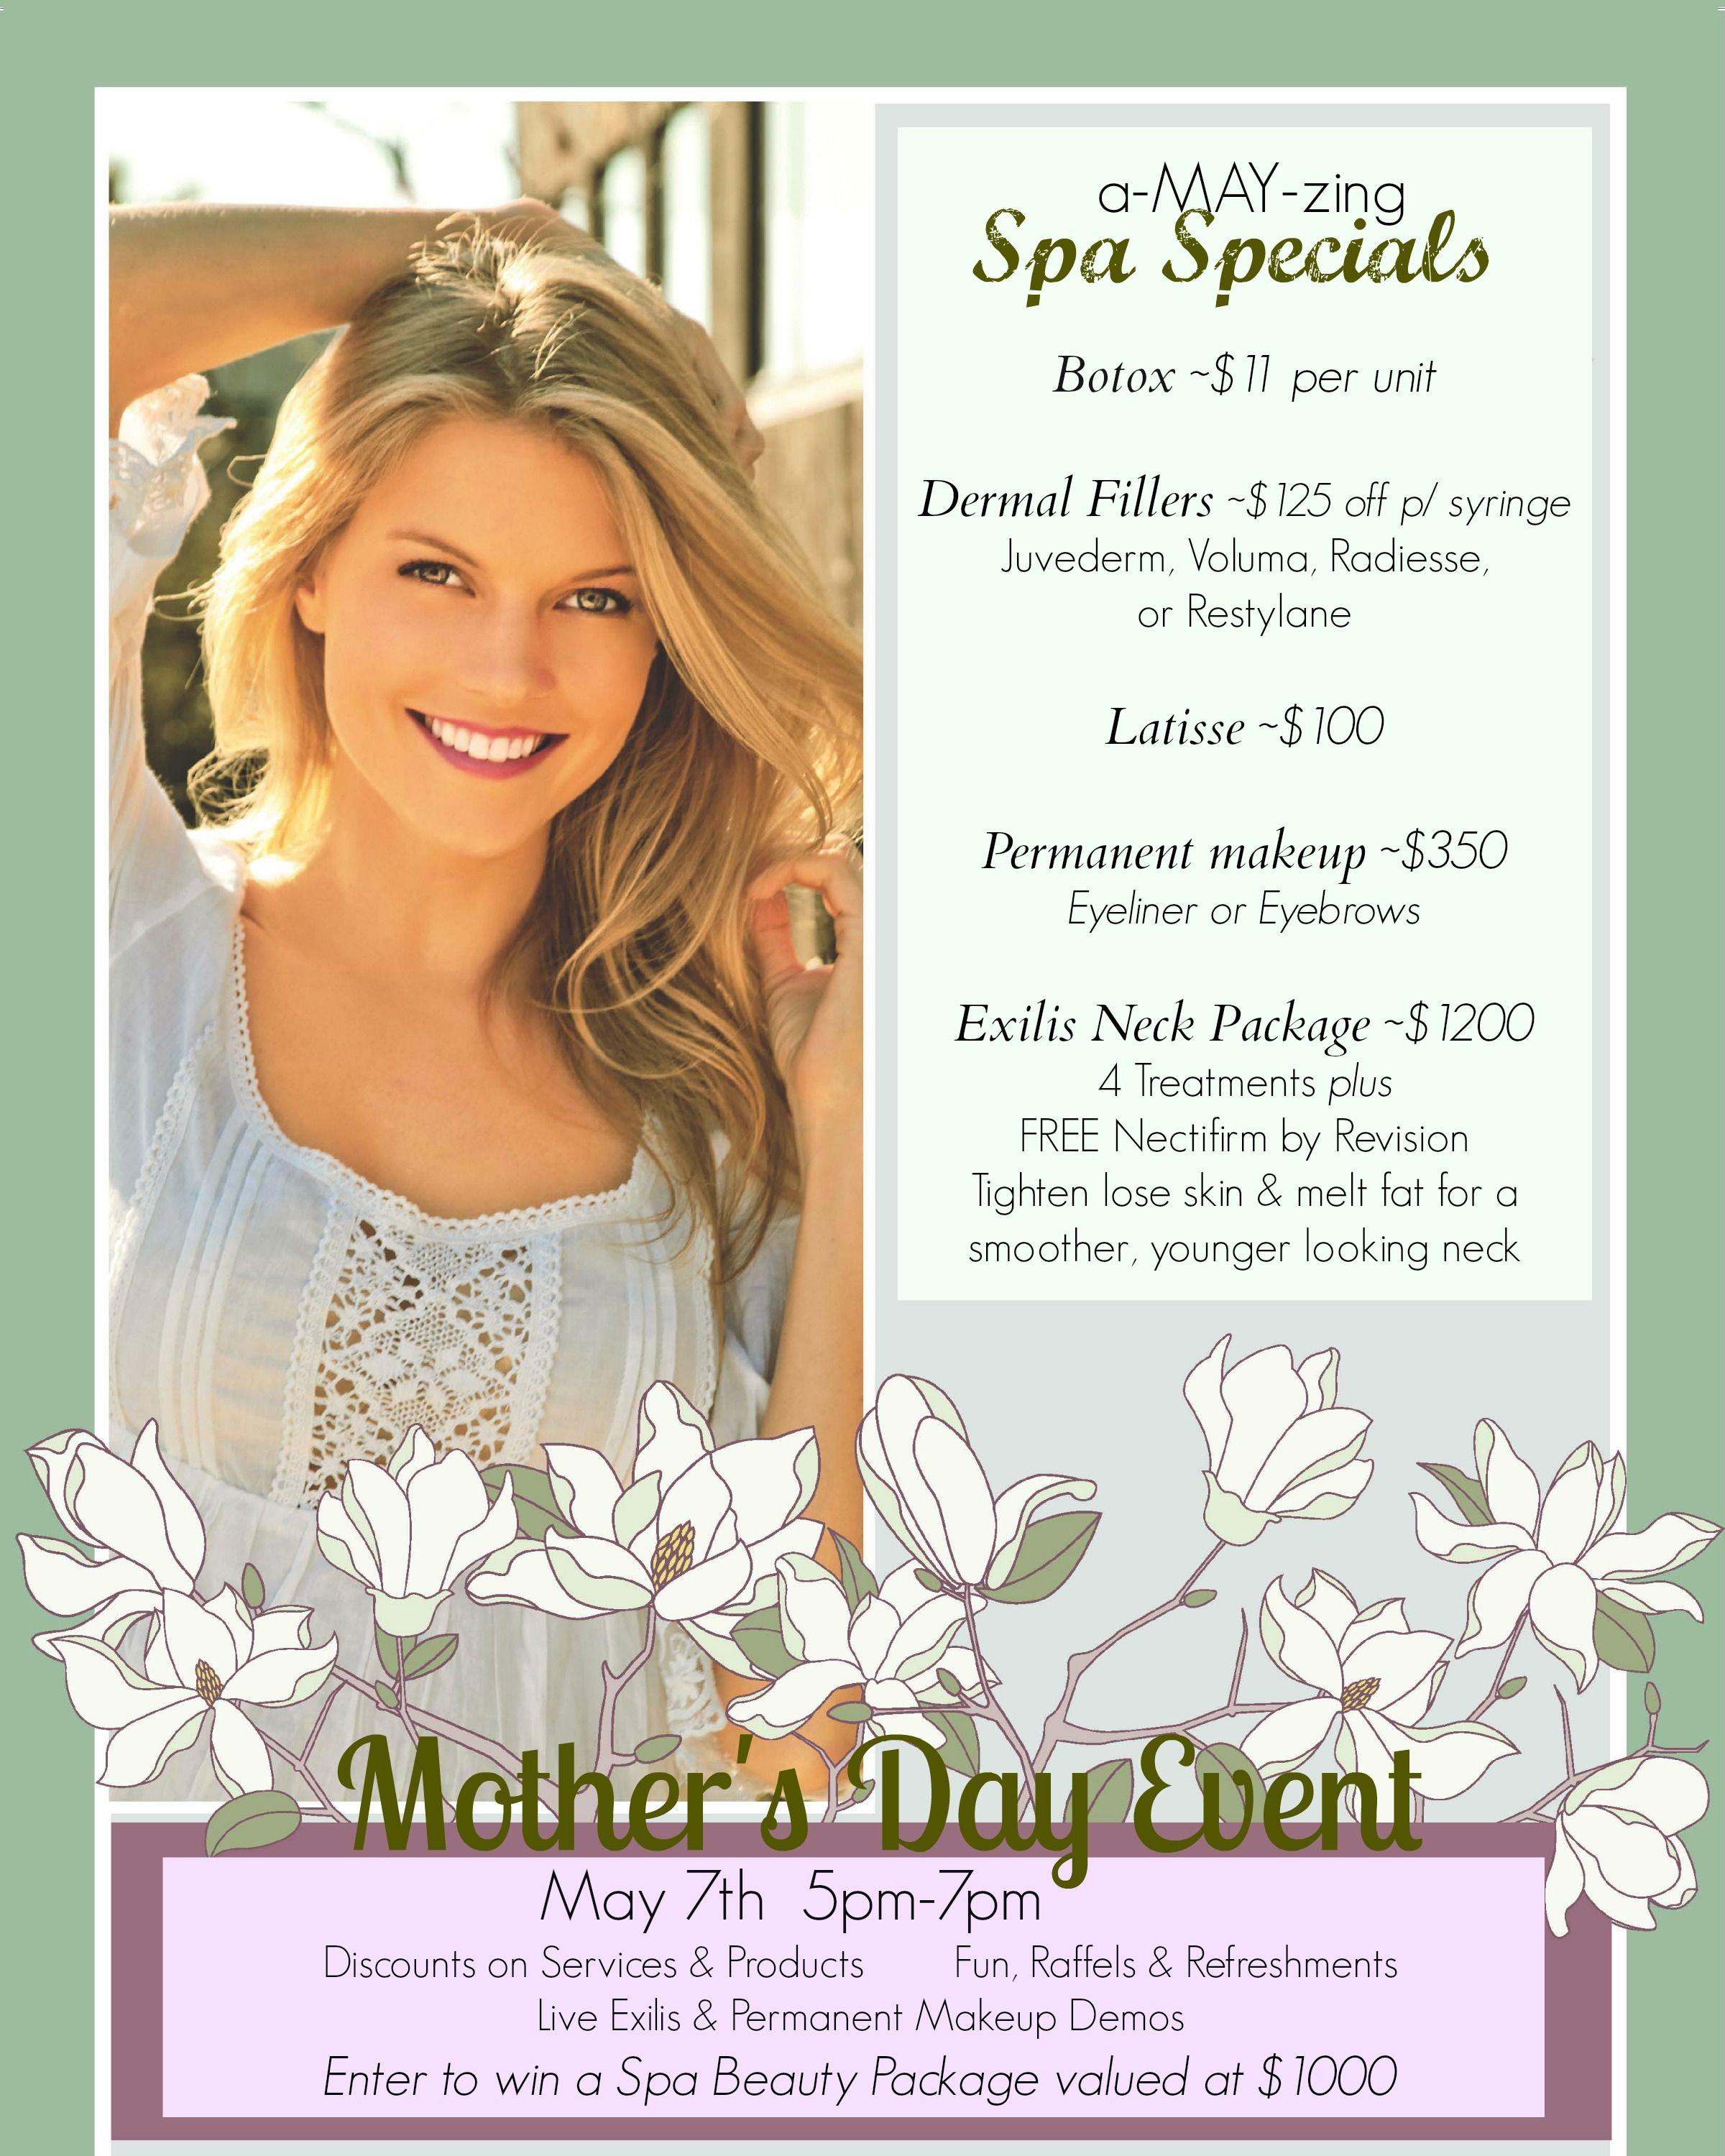 fbd9f246a3378 a-MAY-zing Spa Specials & Mother's Day Event at Charleston Medical Spa!